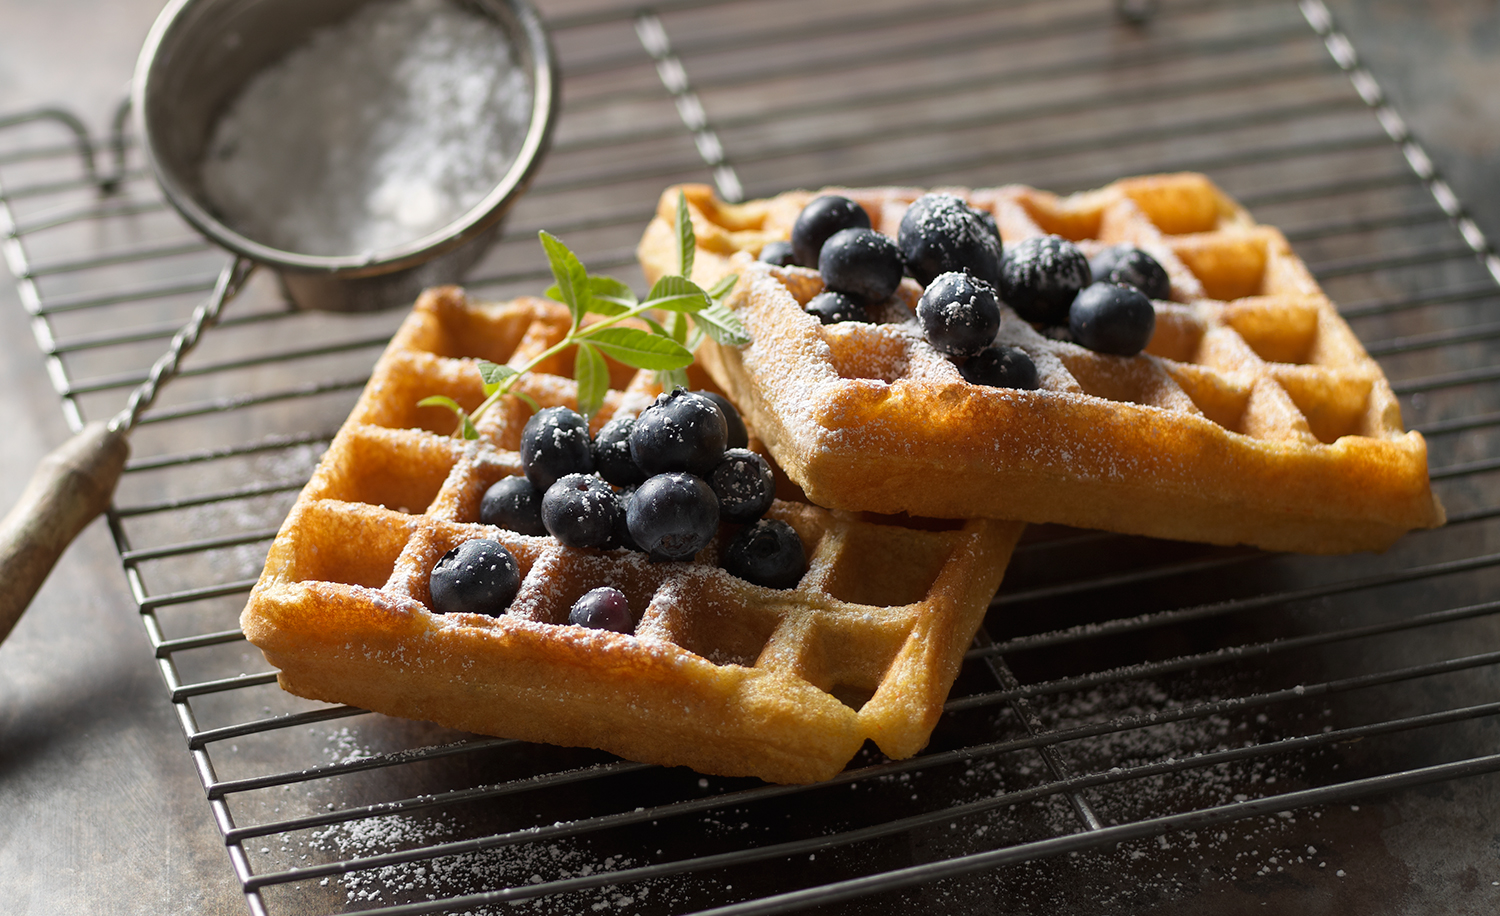 Sweet Cornmeal Waffles with Blueberries | Tony Kubat Photography